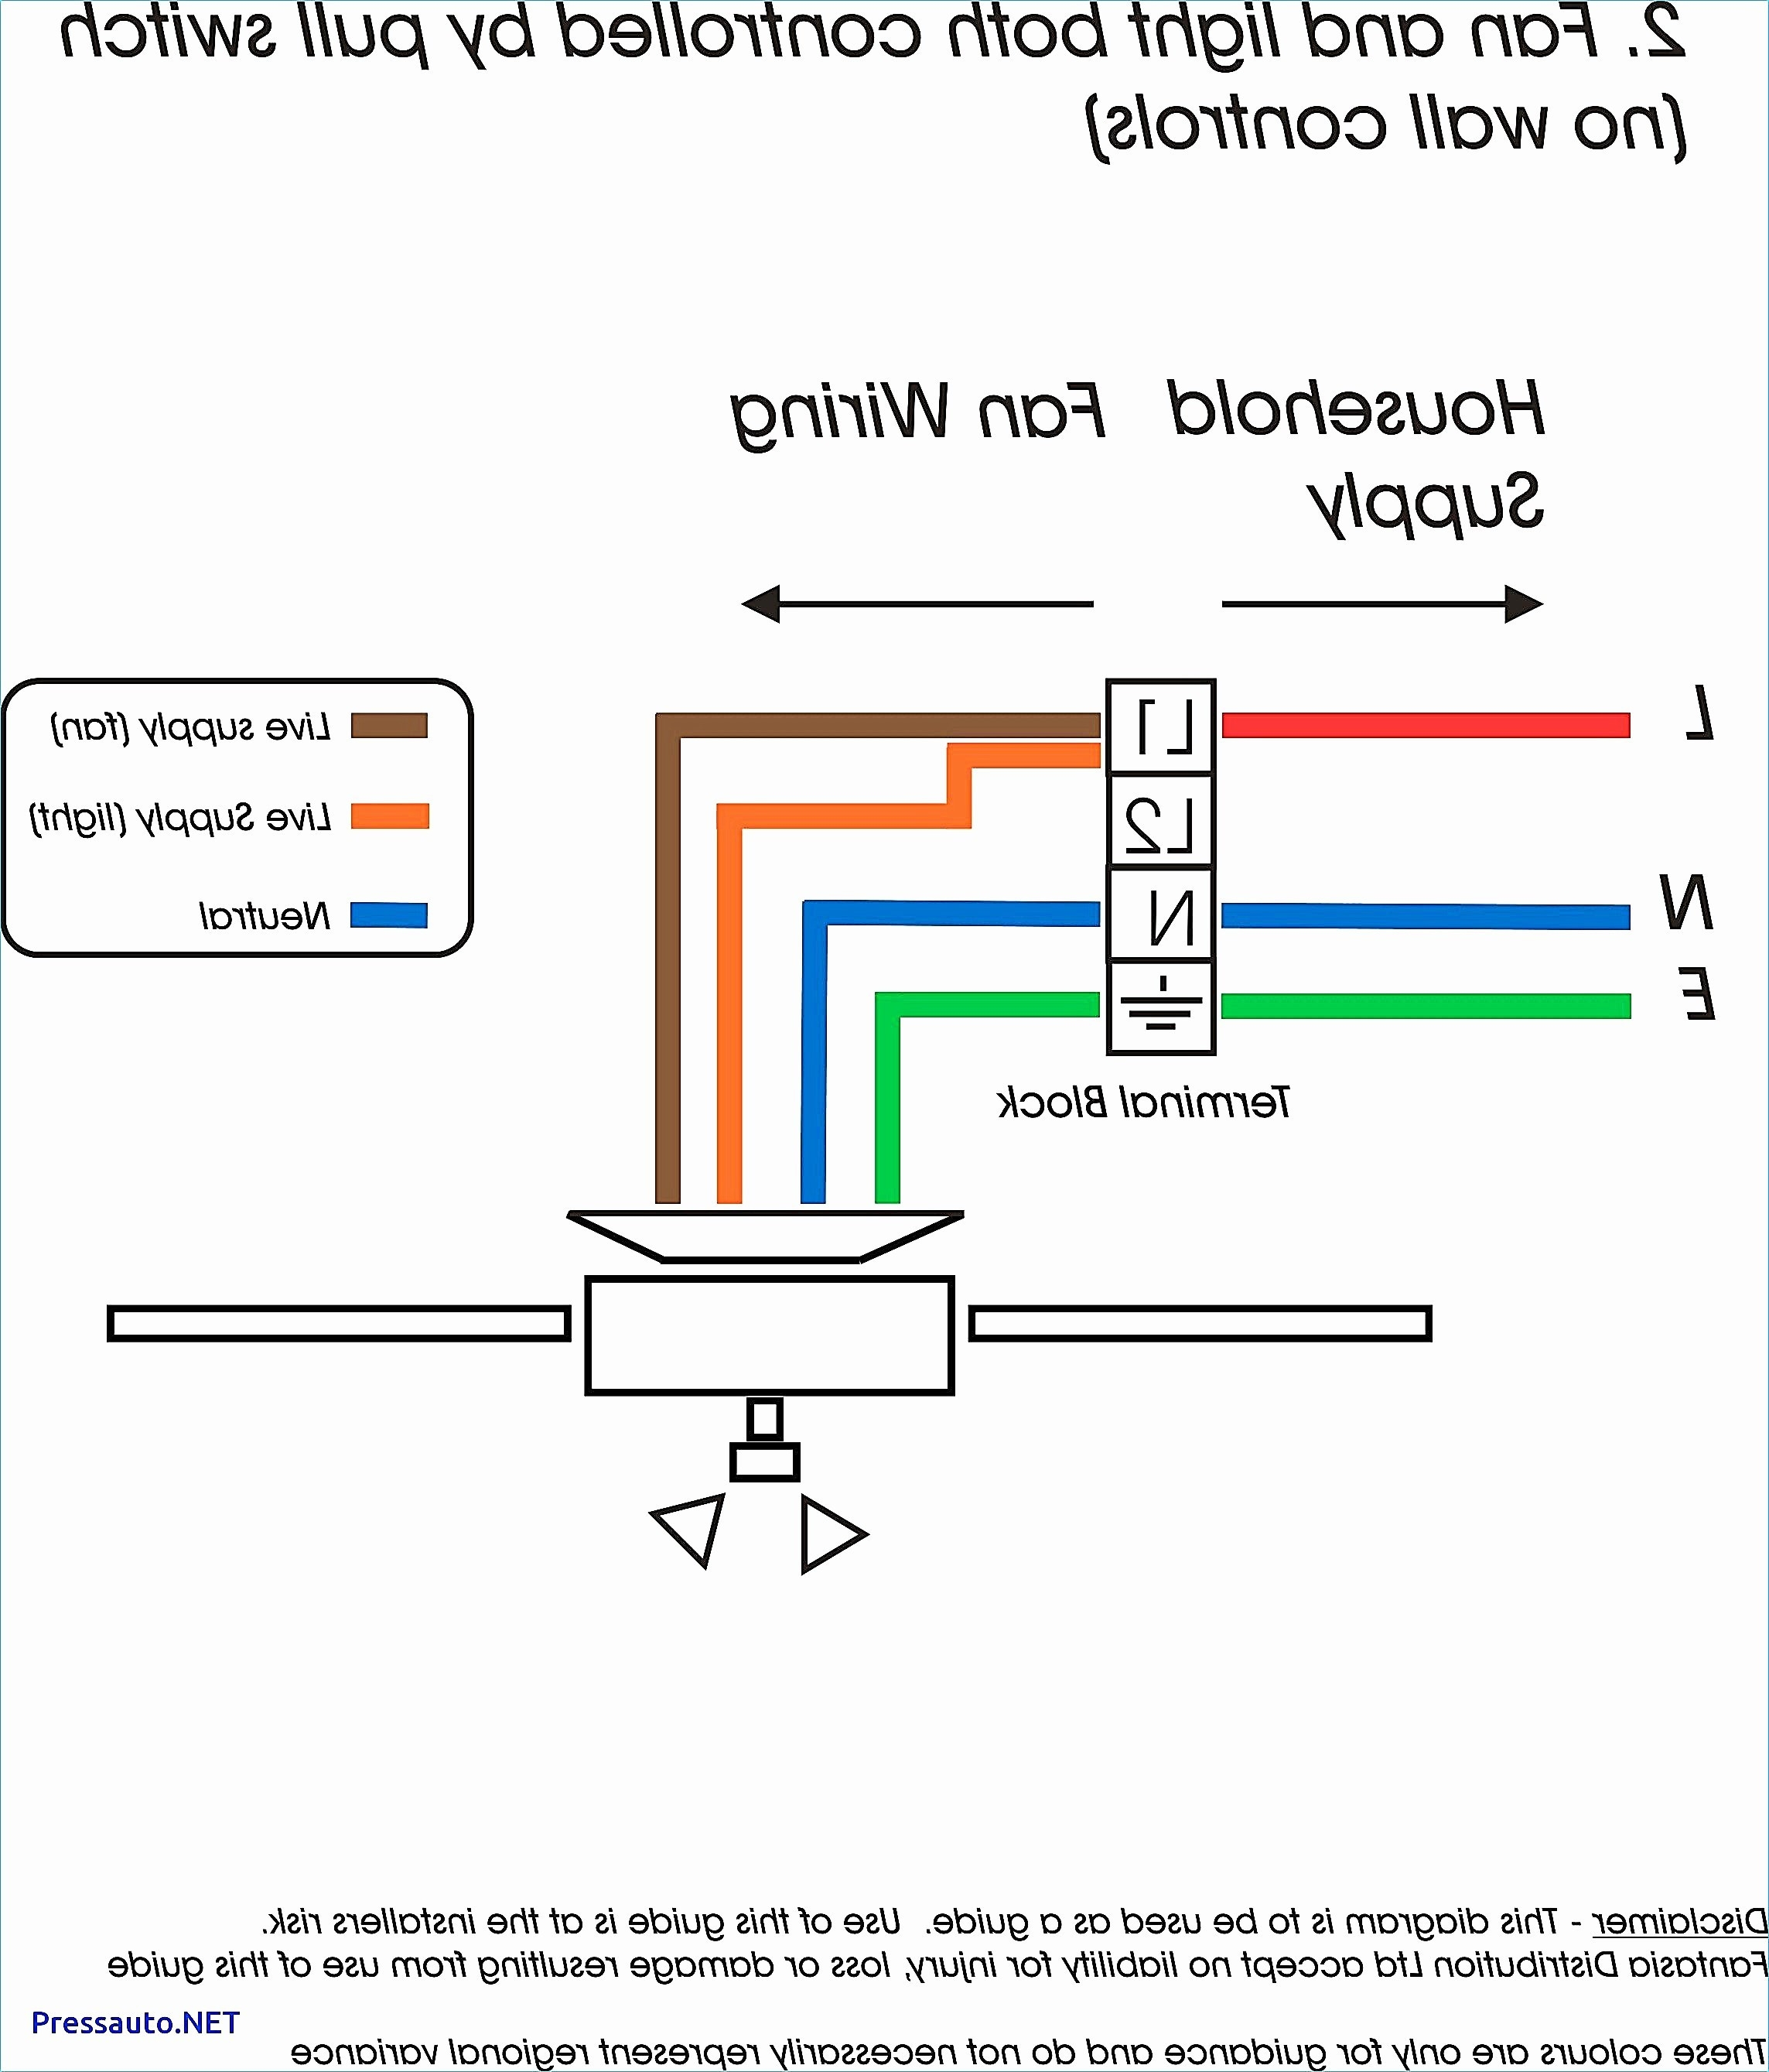 cat5e crossover cable wiring diagram Collection-Wiring Diagram for Cat5 Crossover Cable Best Wiring Diagram for A 20-c